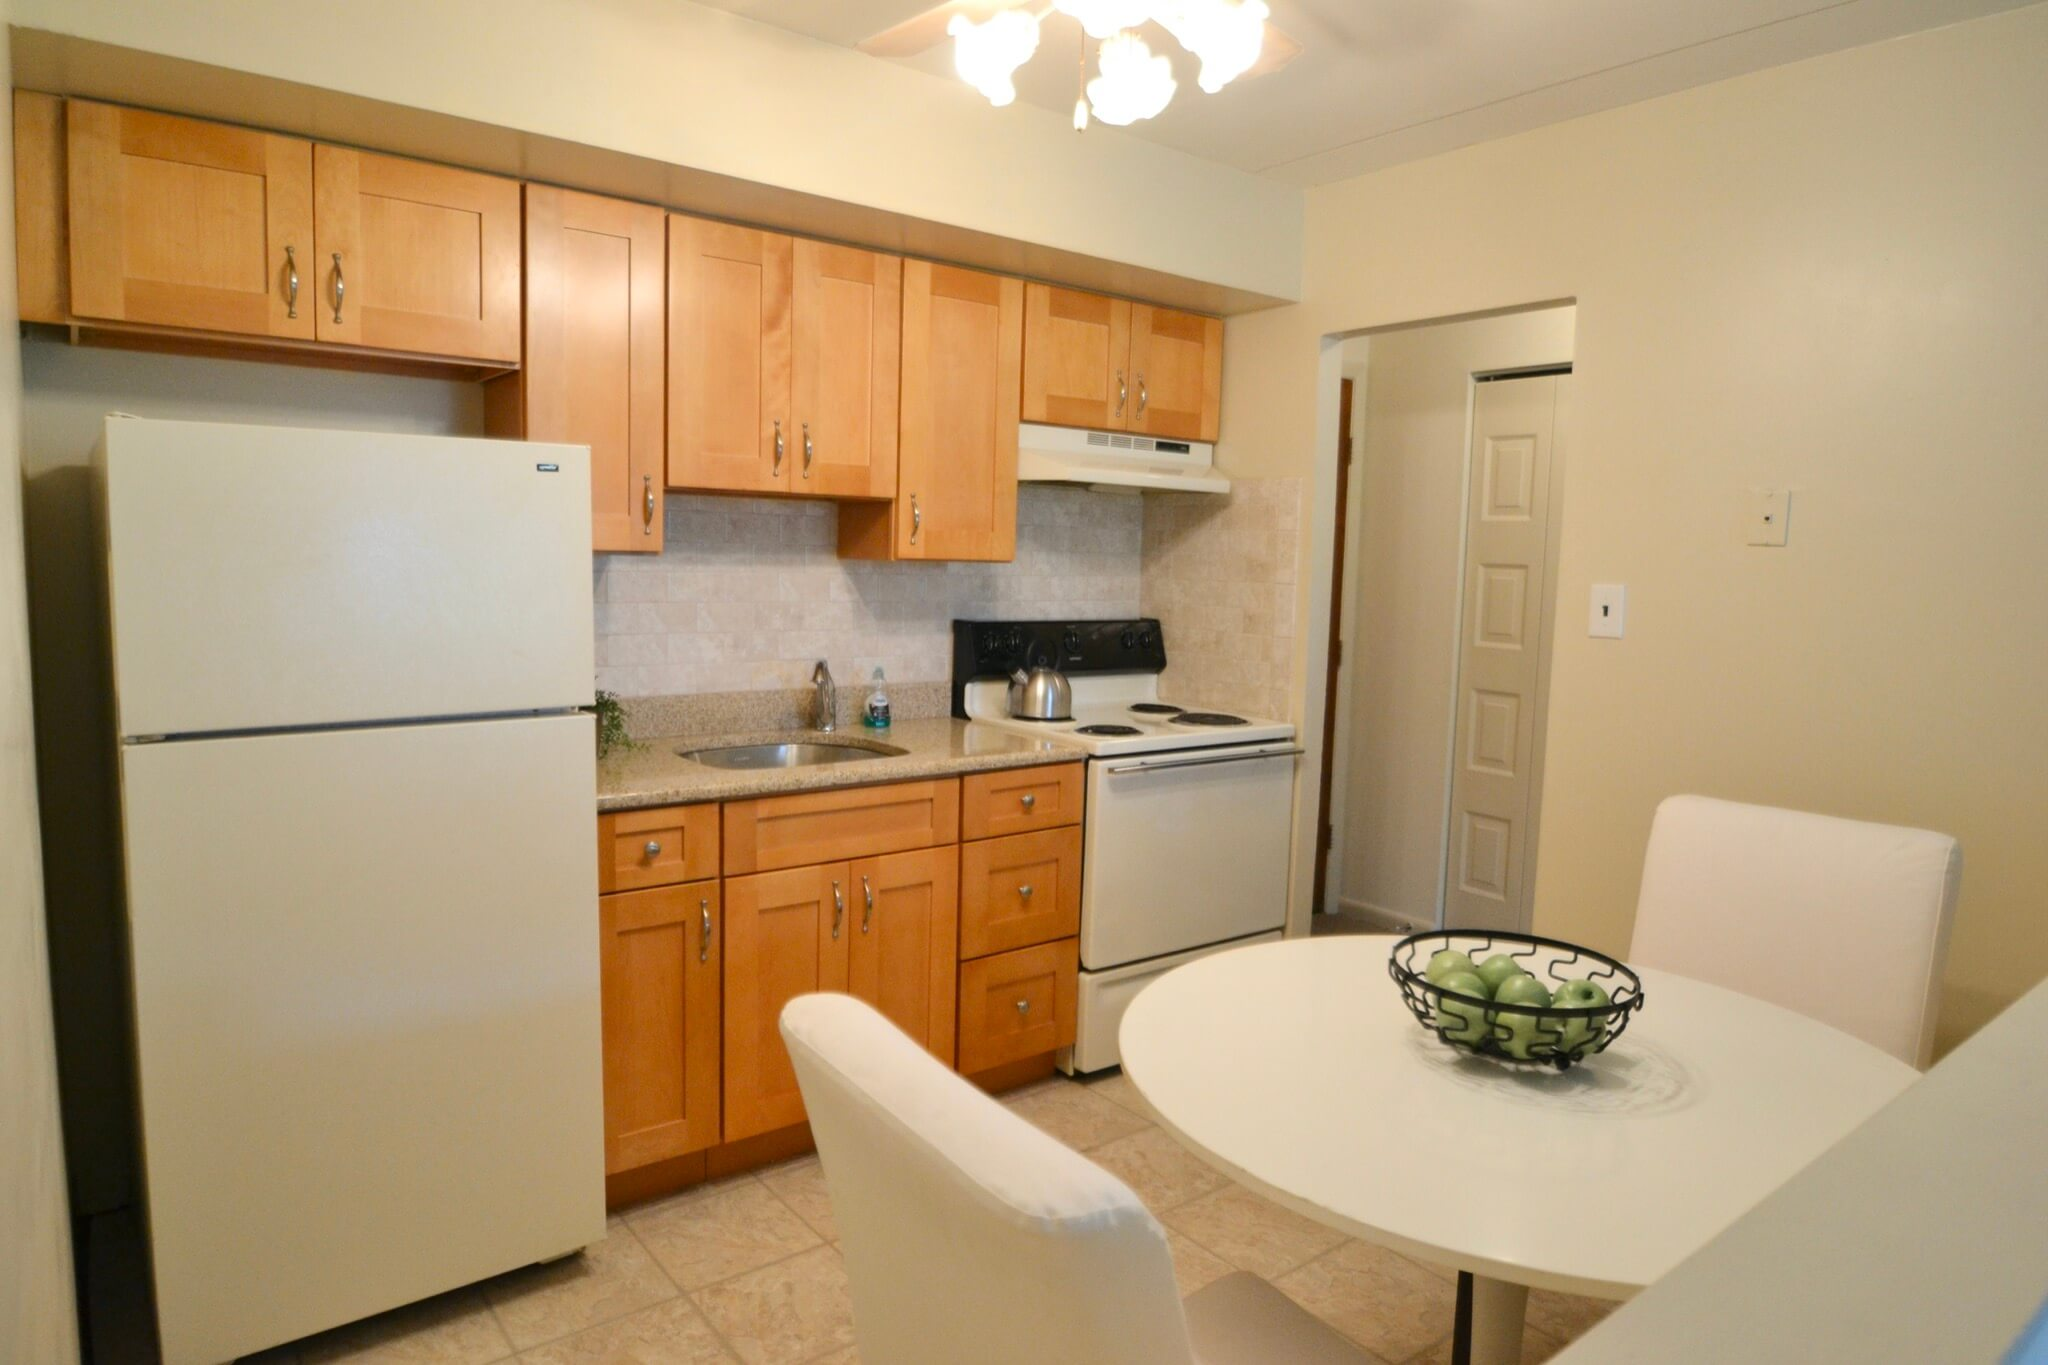 2 Bedroom Apartment Kitchen